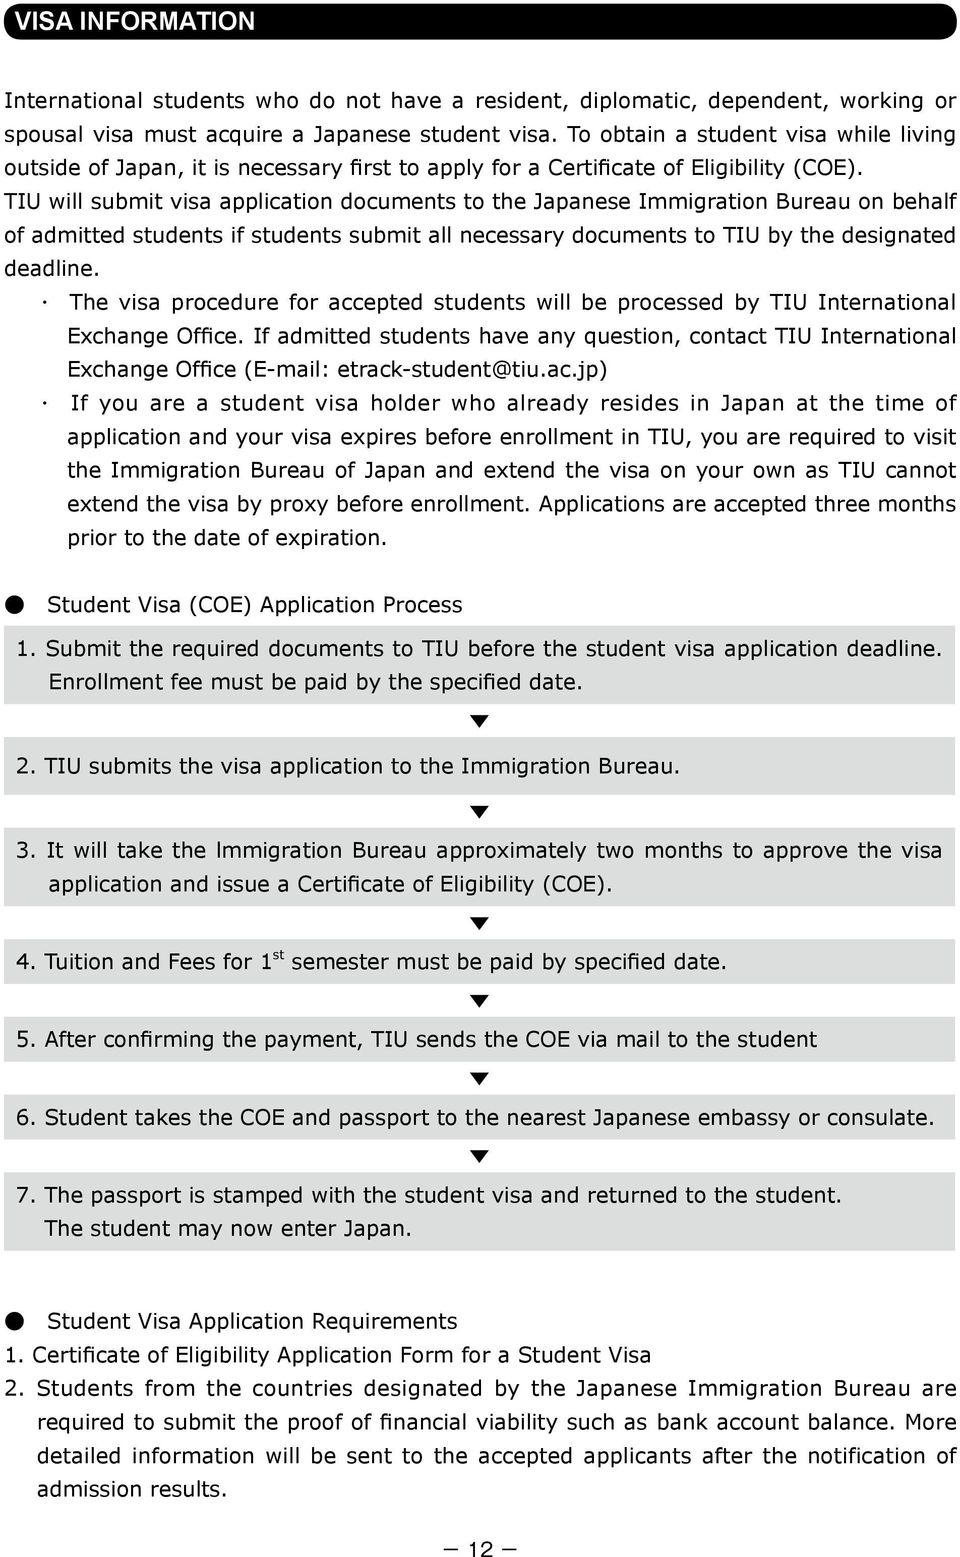 TIU will submit visa application documents to the Japanese Immigration Bureau on behalf of admitted students if students submit all necessary documents to TIU by the designated deadline.